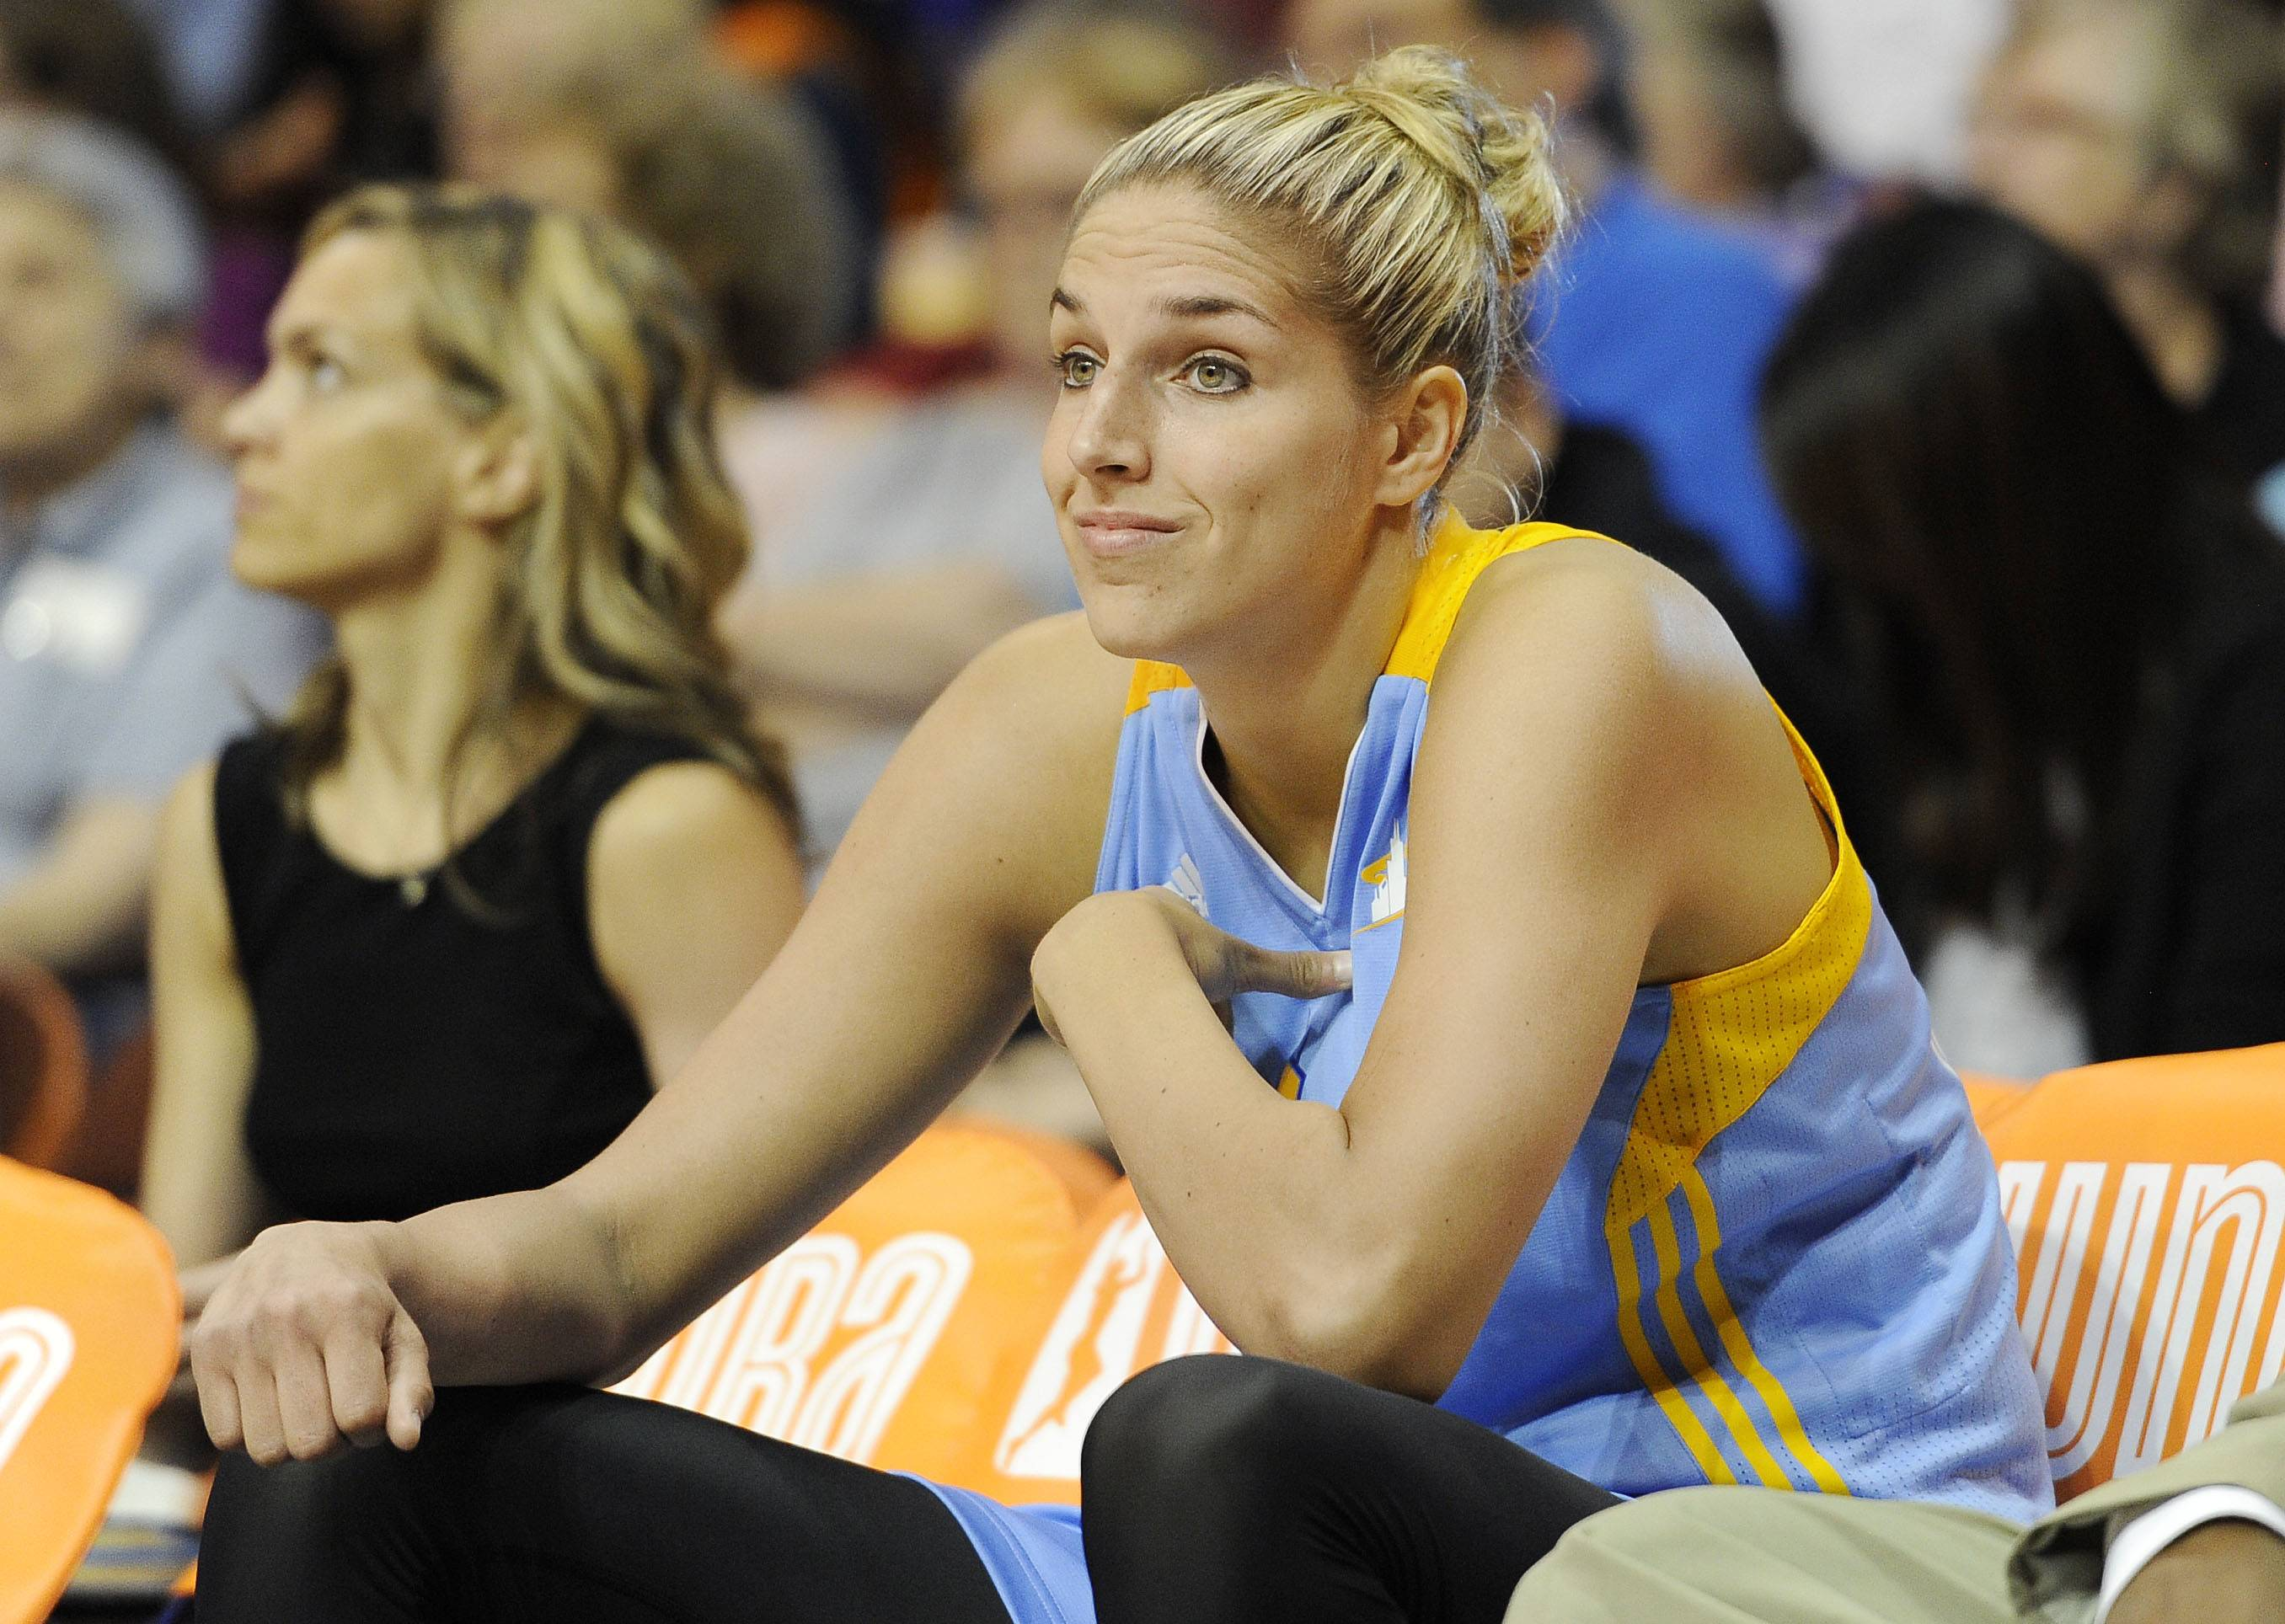 Elena Delle Donne has returned to Delaware to receive treatment for a Lyme Disease flare-up, and when she will return to the Chicago Sky is uncertain.